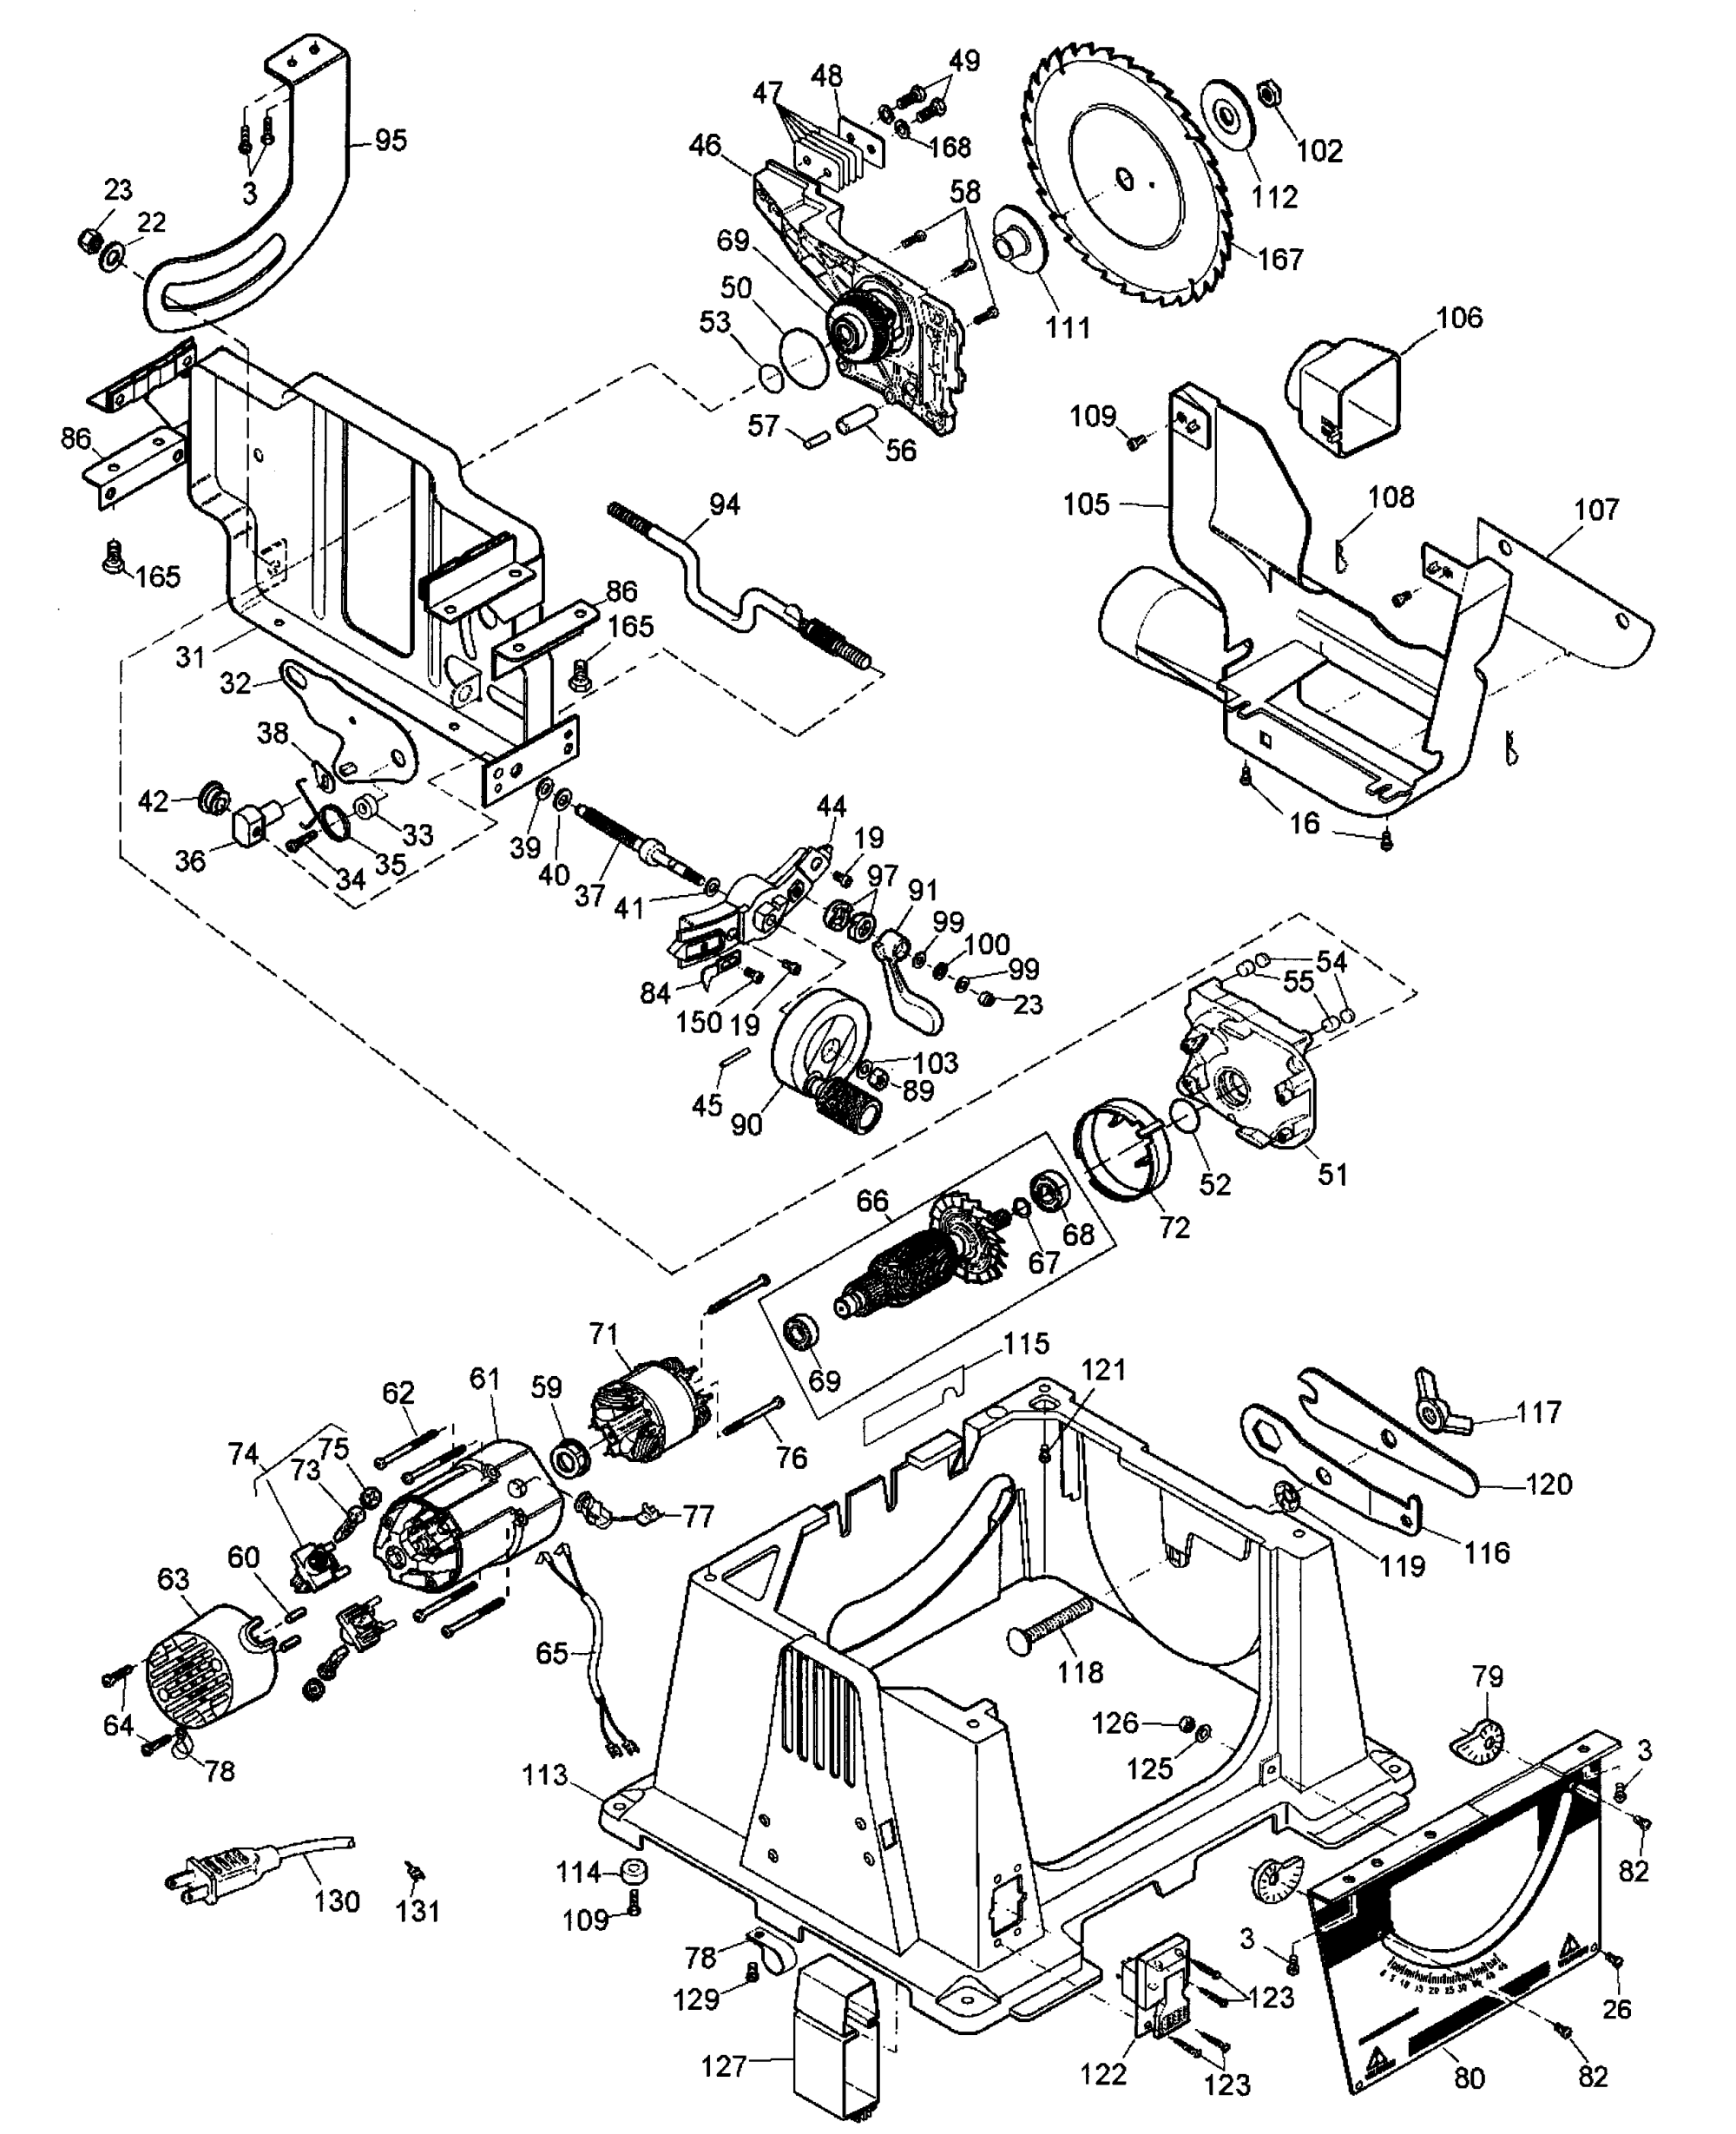 hight resolution of dw744 table saw wiring diagram wiring diagram standard dw744 table saw wiring diagram